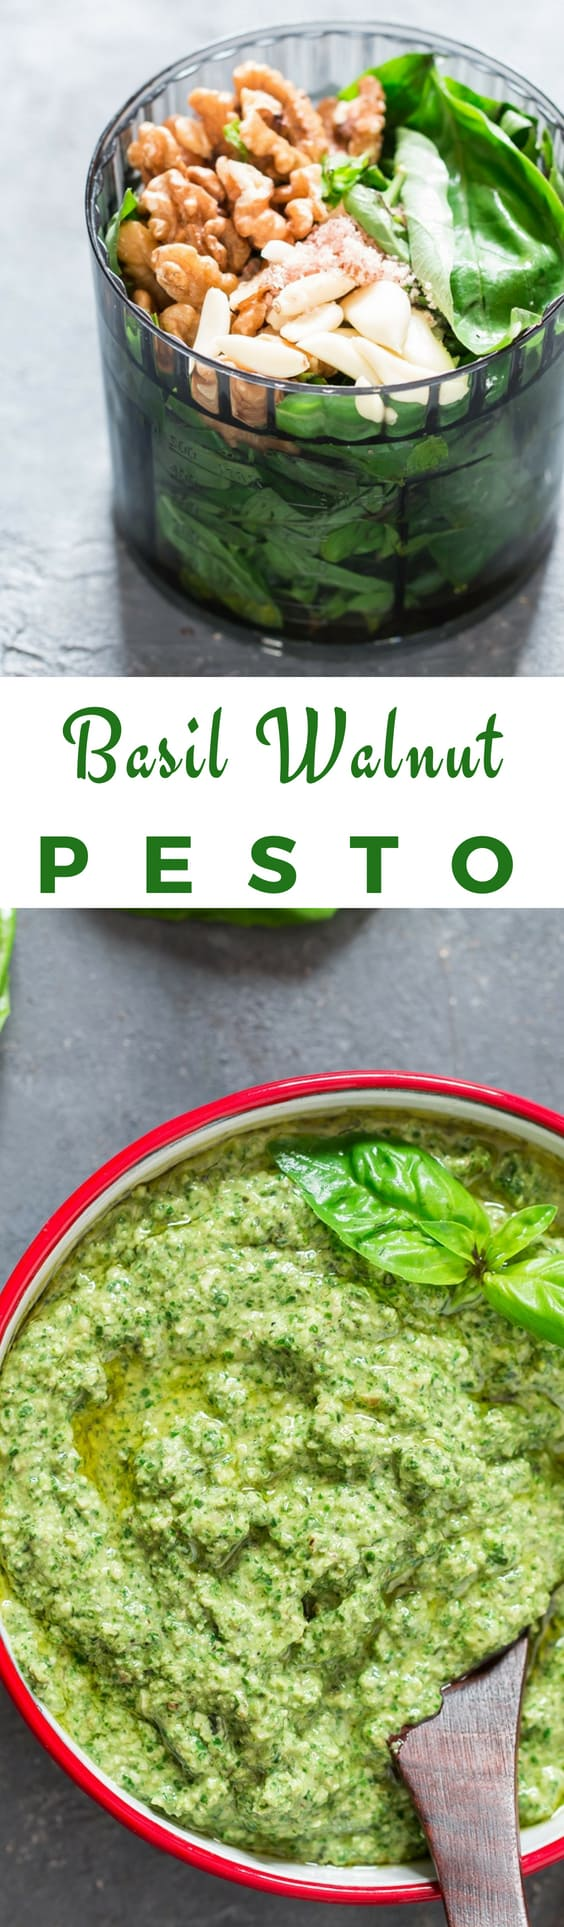 healthy vegan basil walnut pesto in white bowl with text overlay